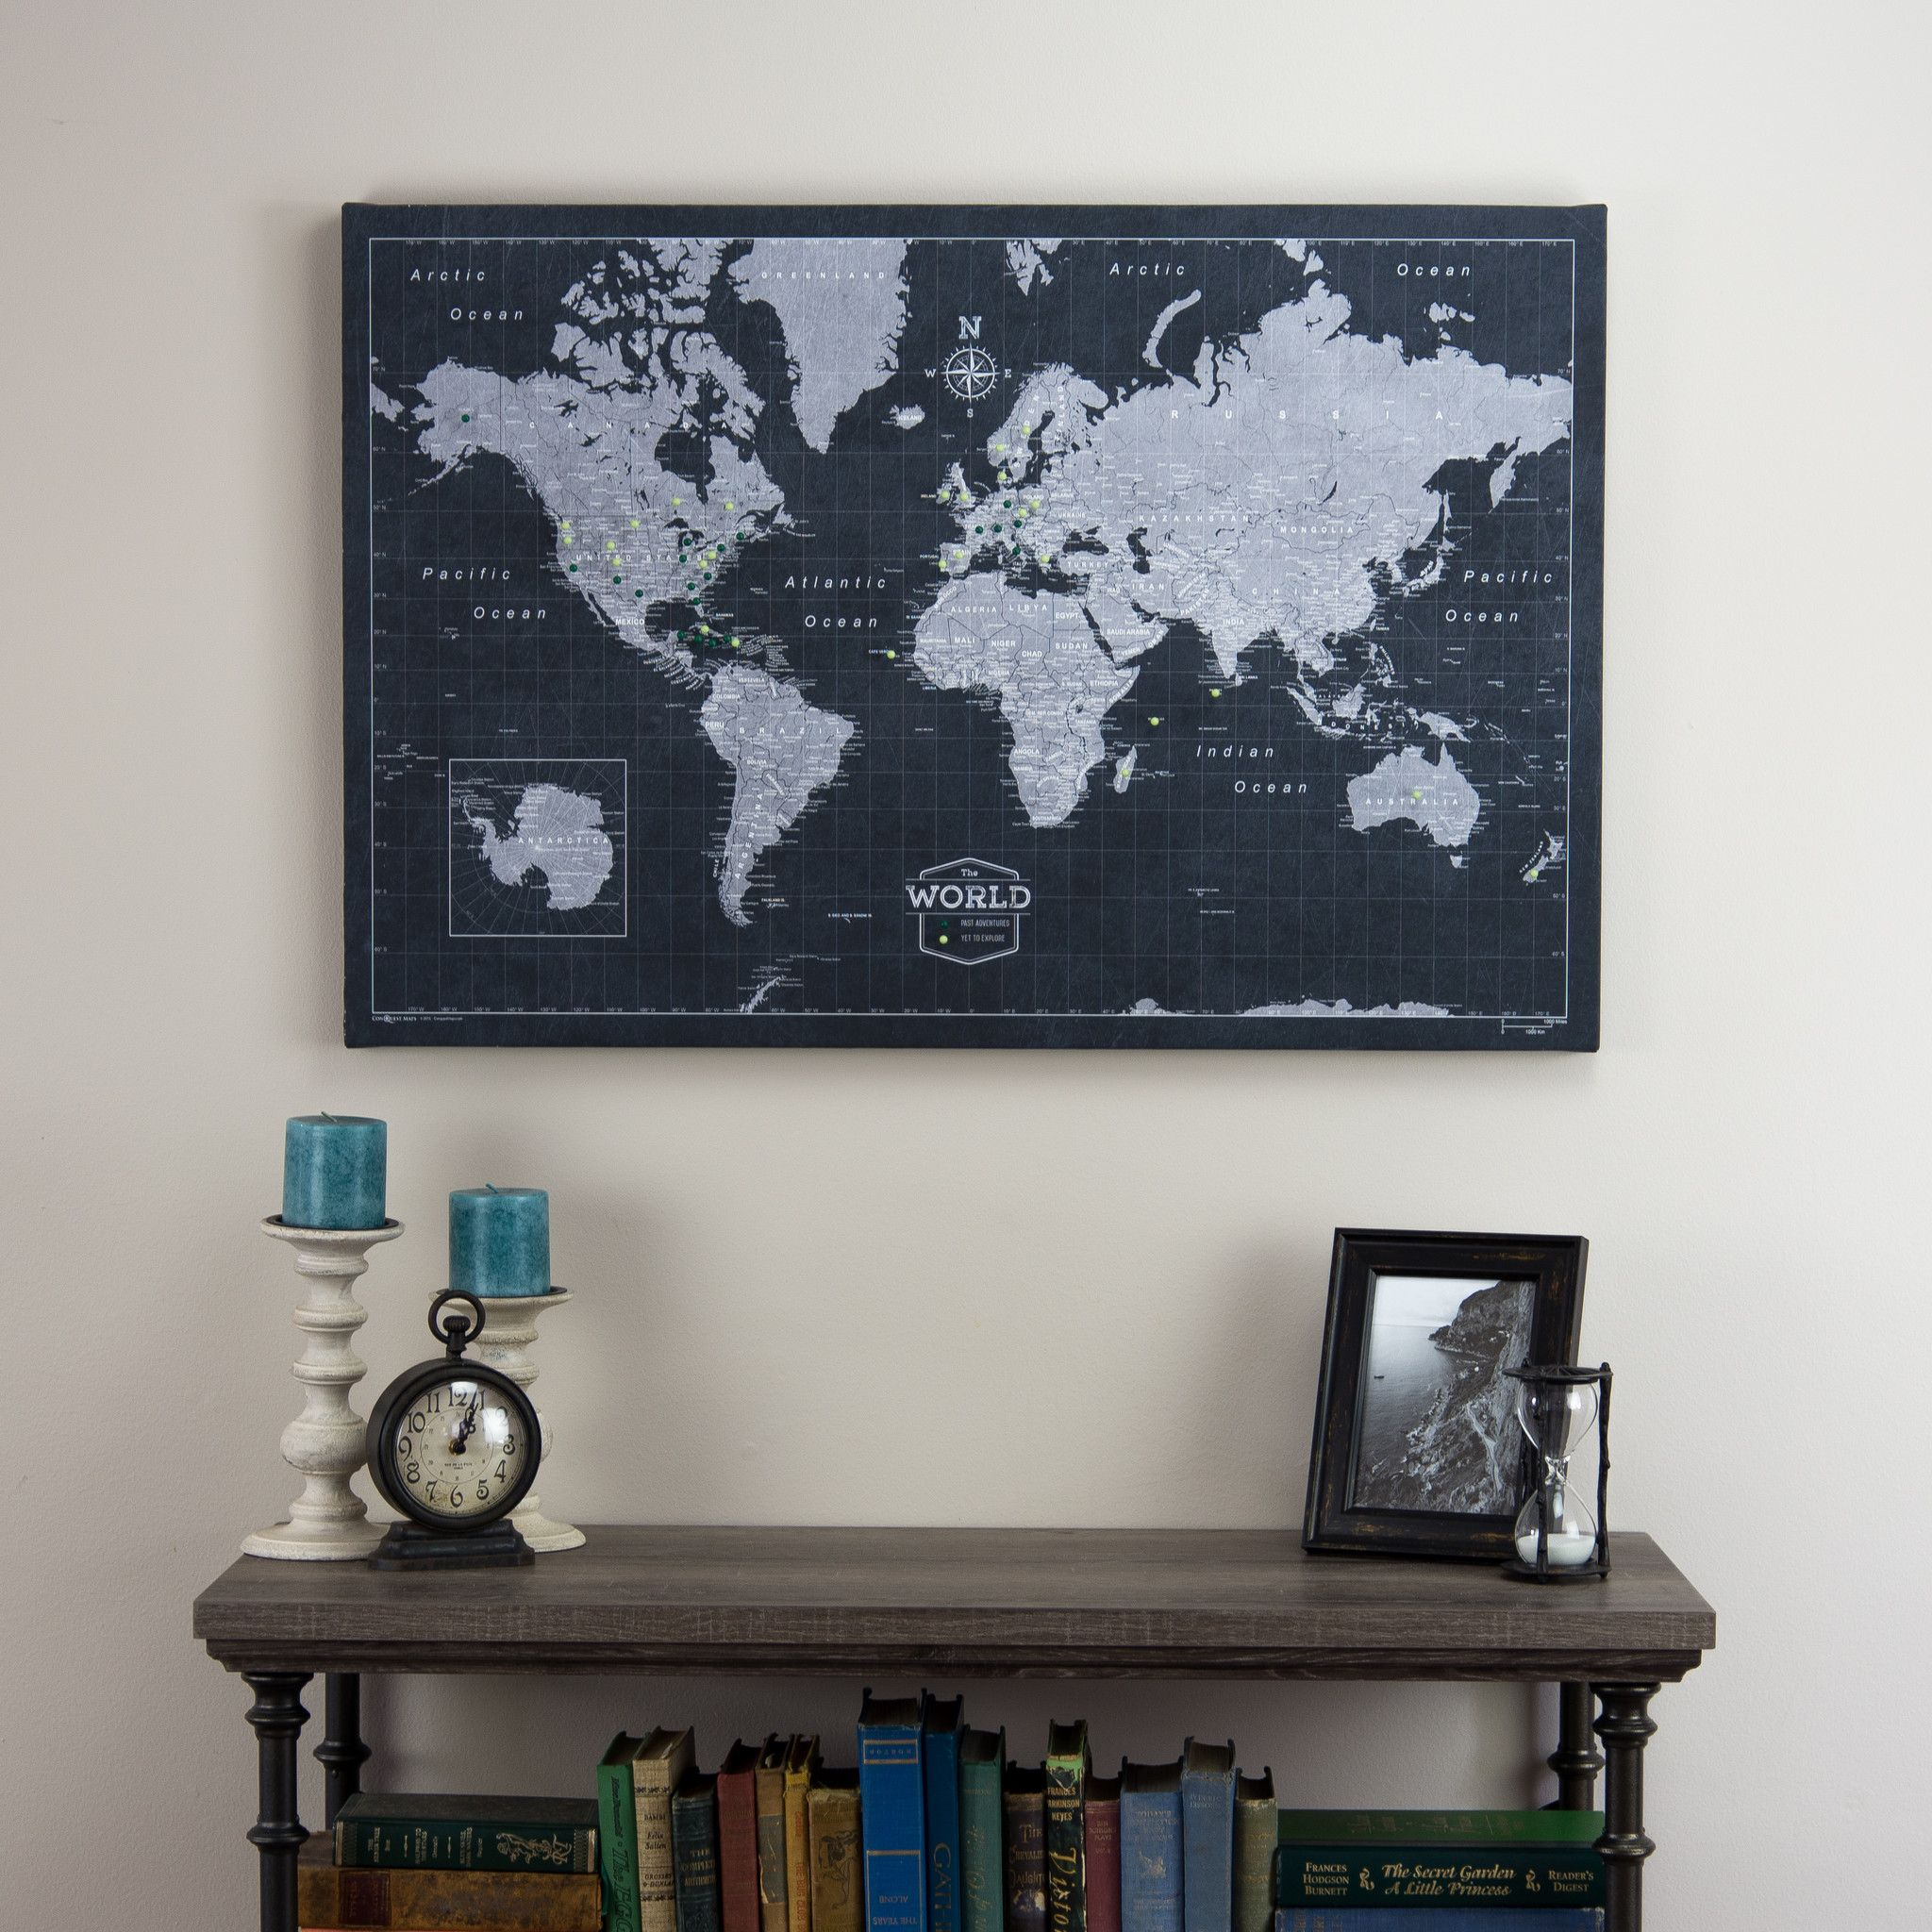 World Travel Map Pin Board wPush Pins Modern Slate – Push Pin Travel Maps